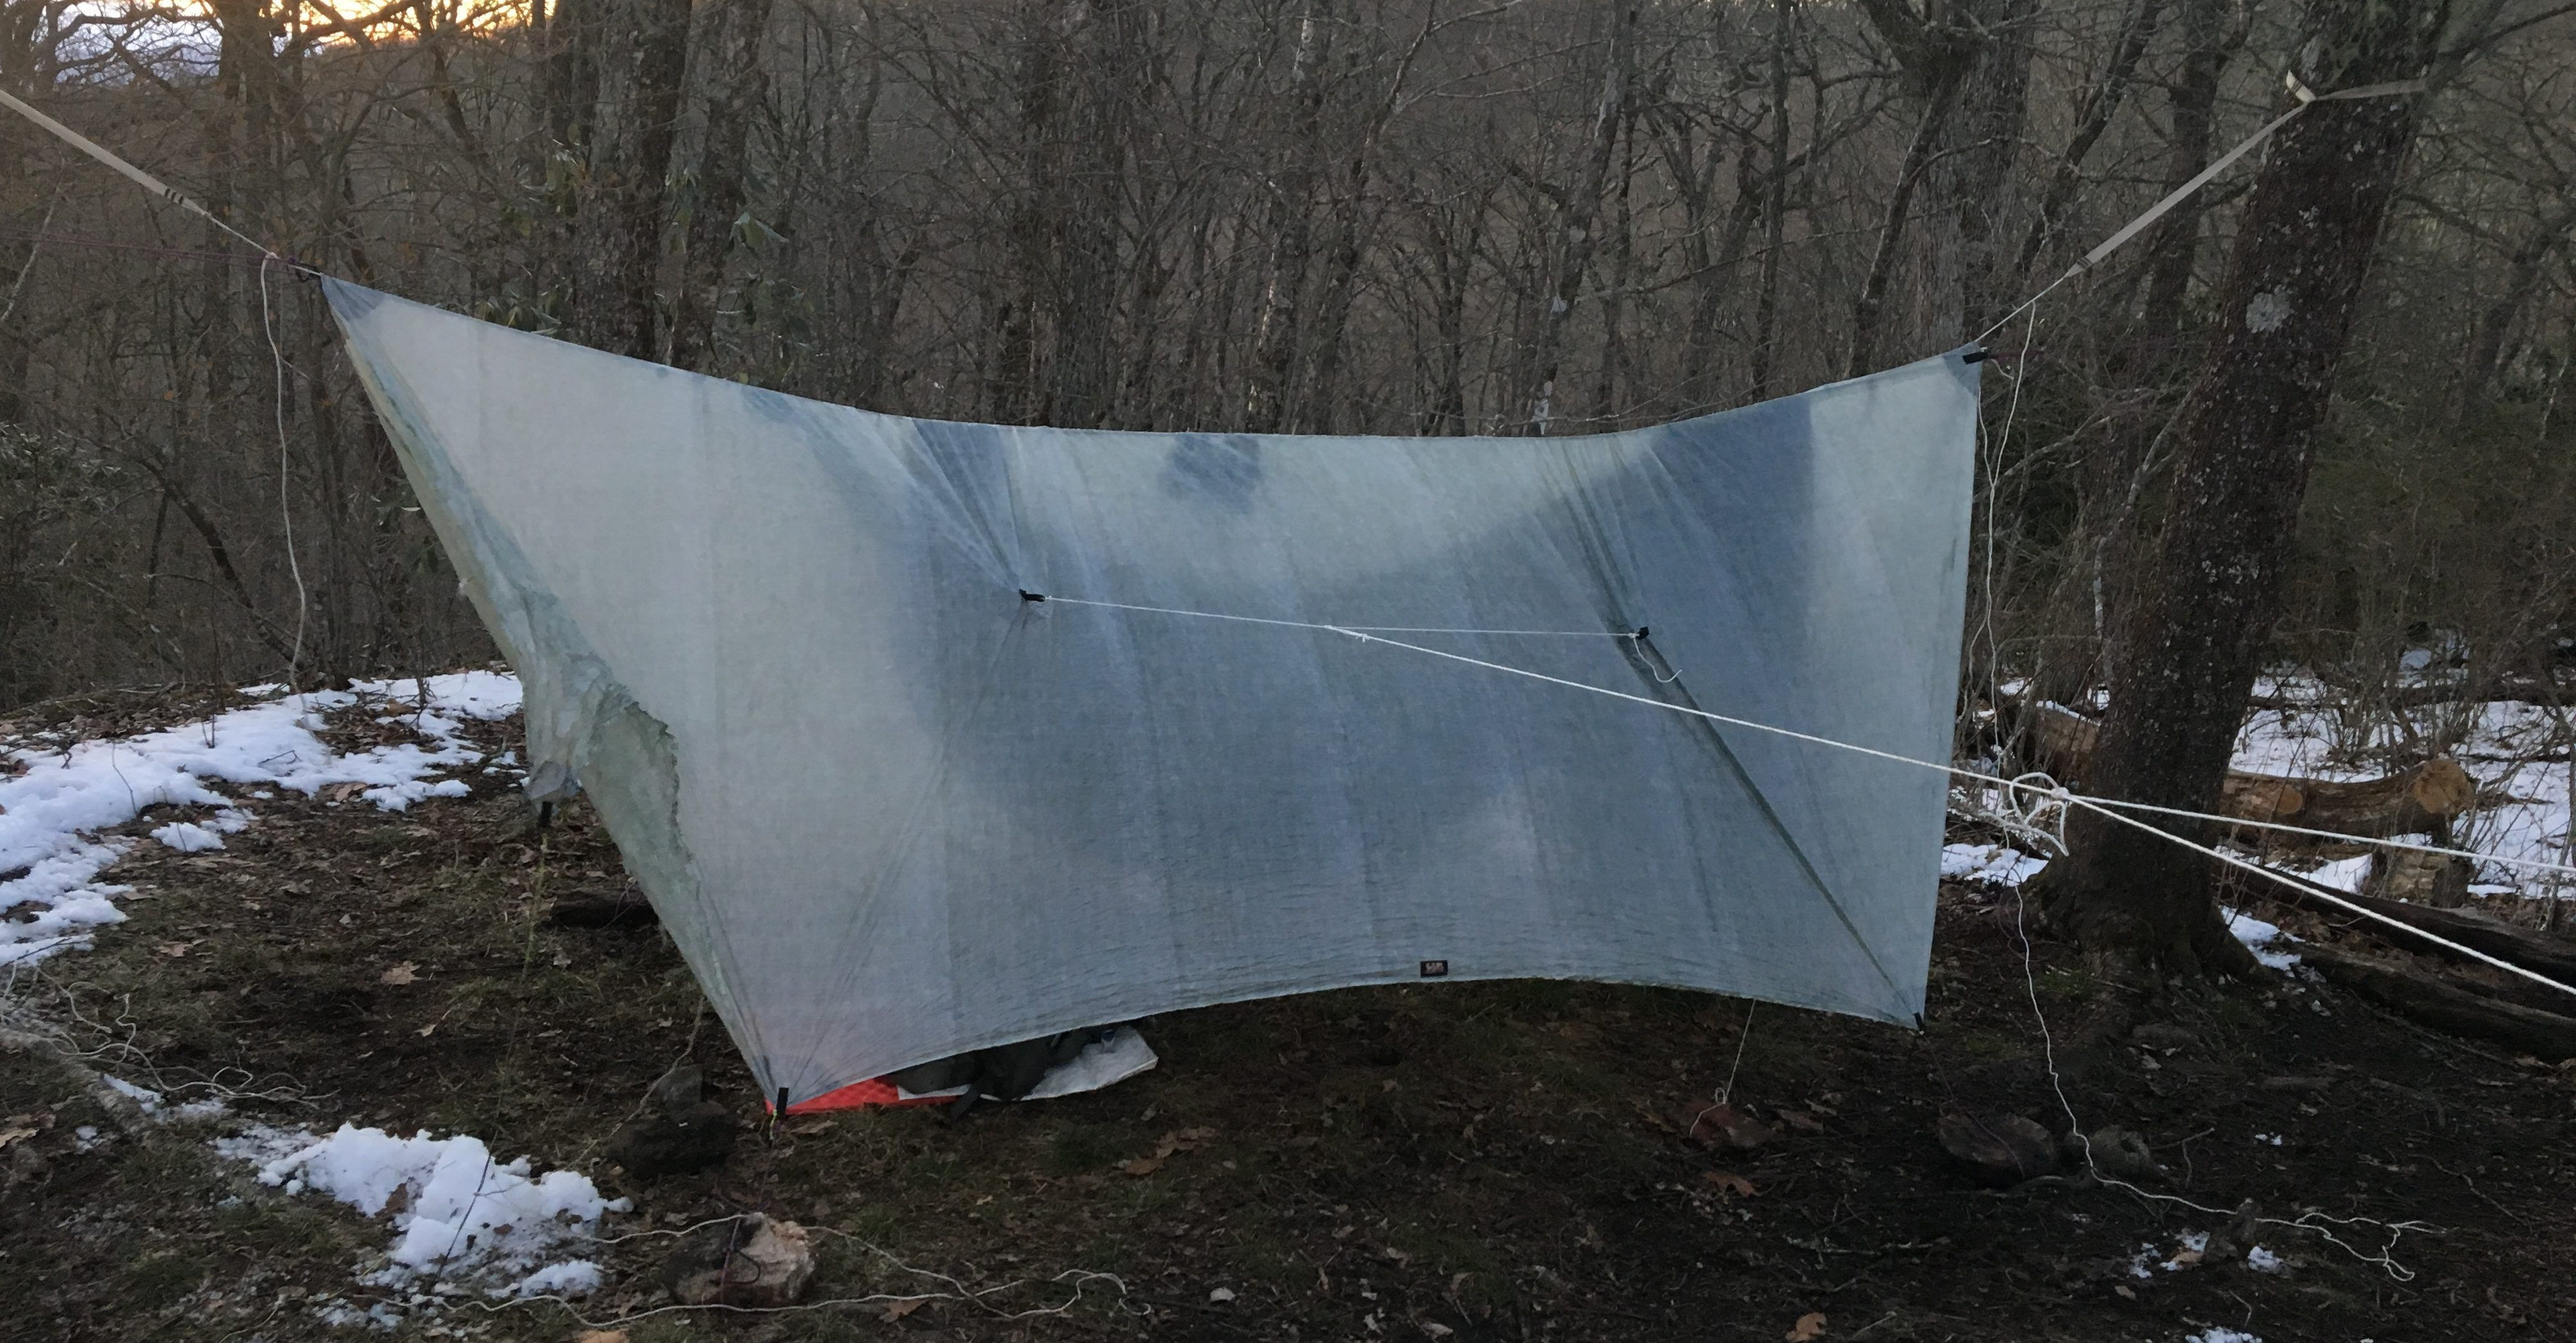 Rigging a hg tarp for hammock camping from scratch includes guy